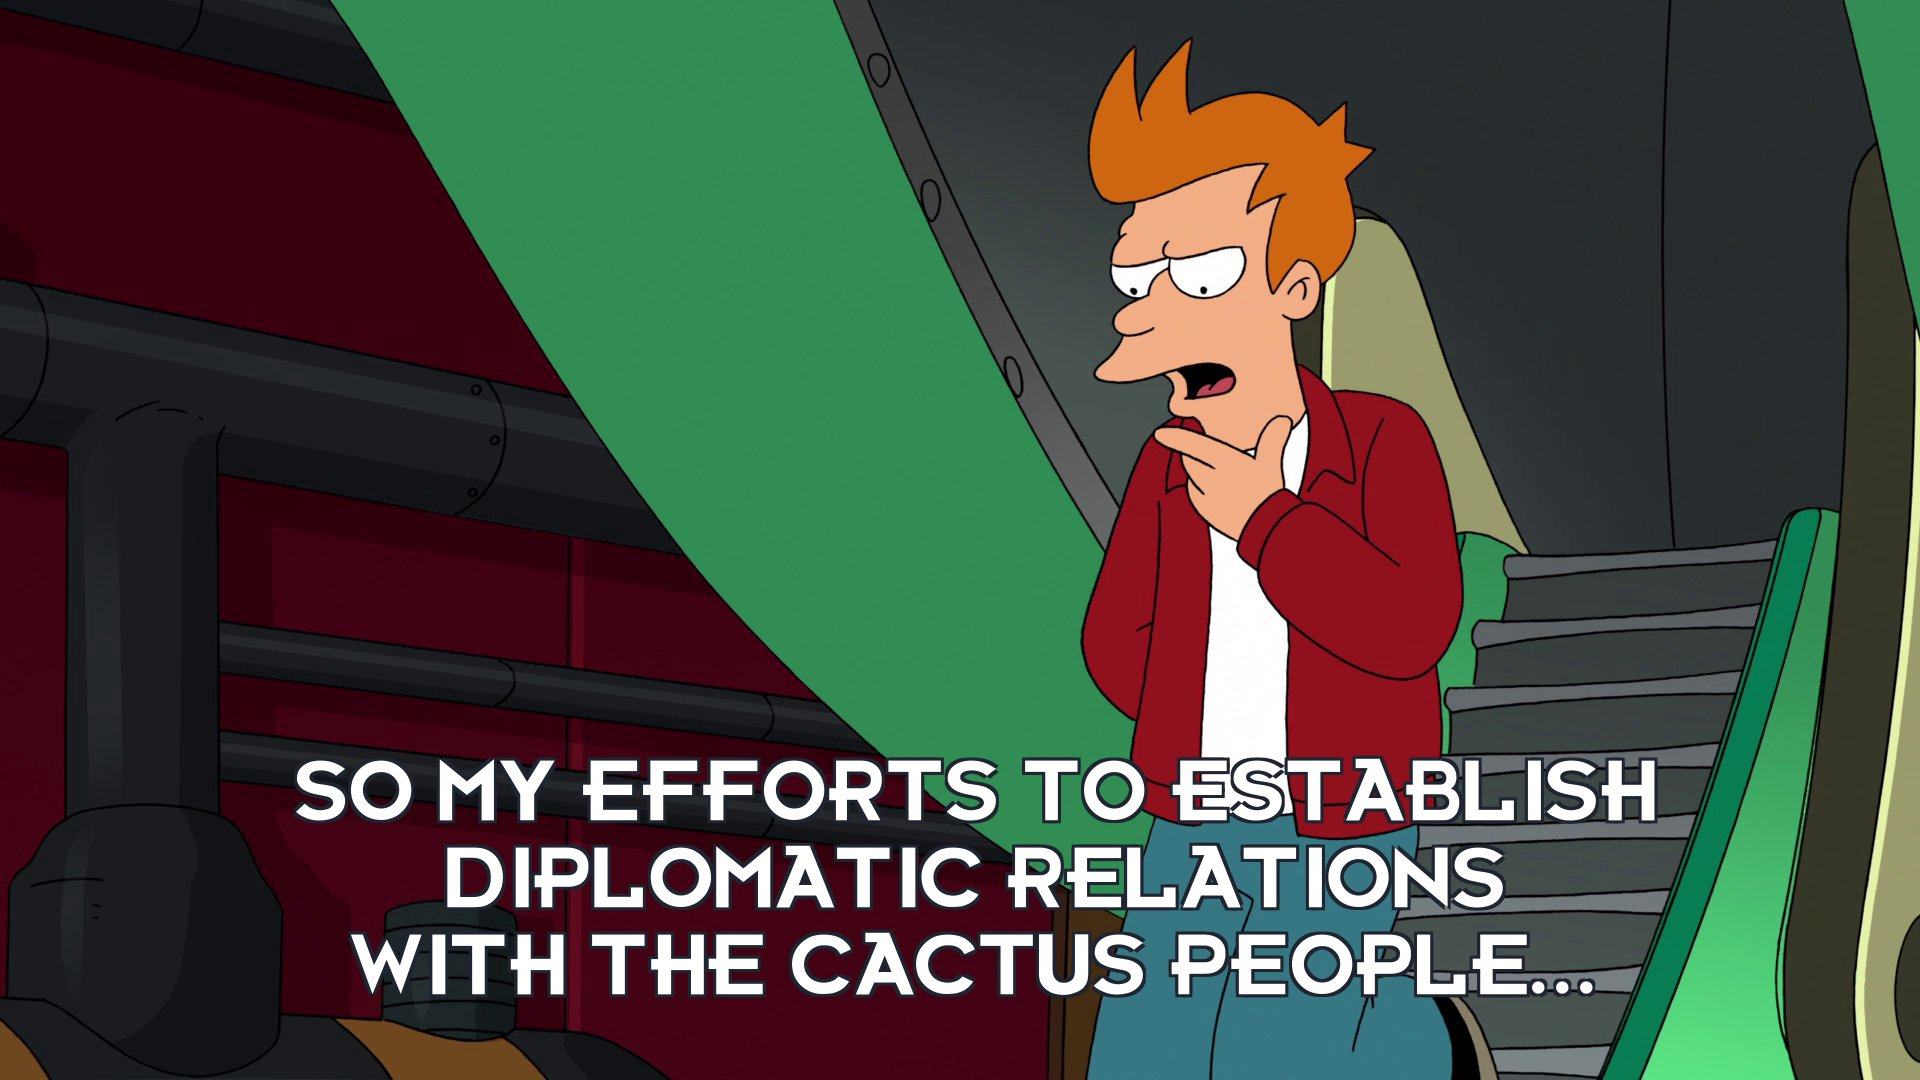 Philip J Fry: So my efforts to establish diplomatic relations with the cactus people...